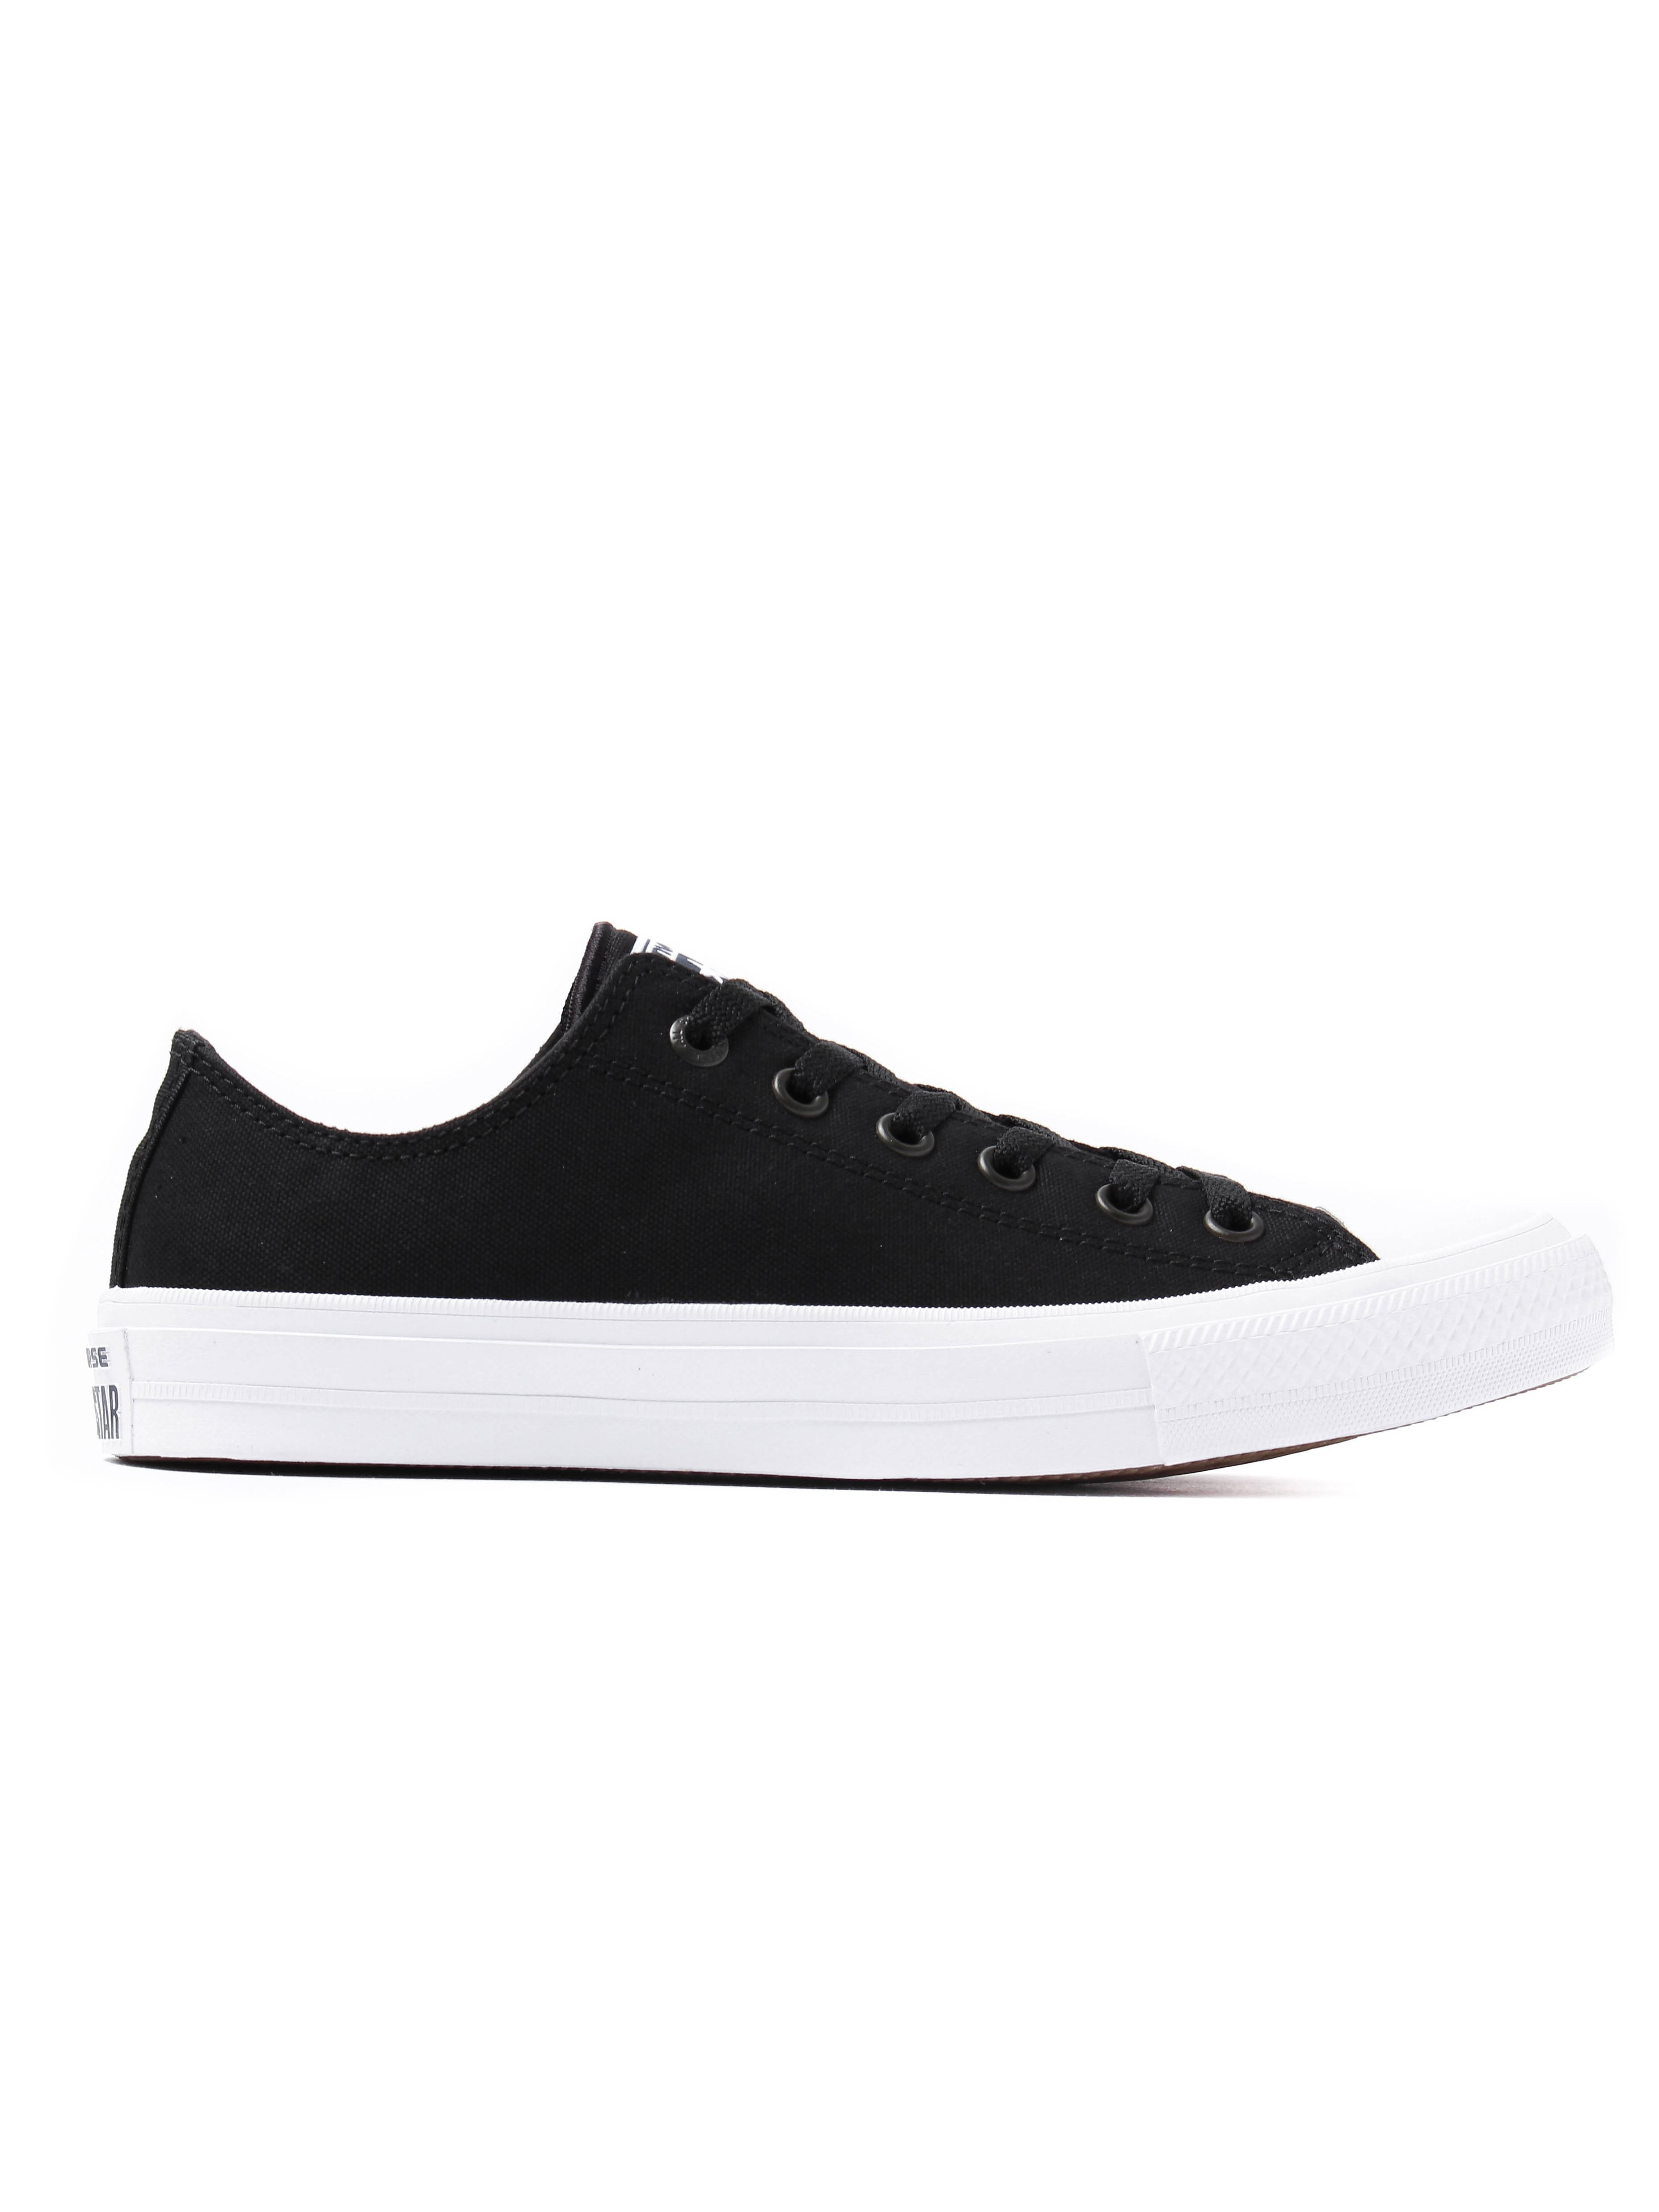 Converse Men's Chuck Taylor All Star II OX Trainers - Black